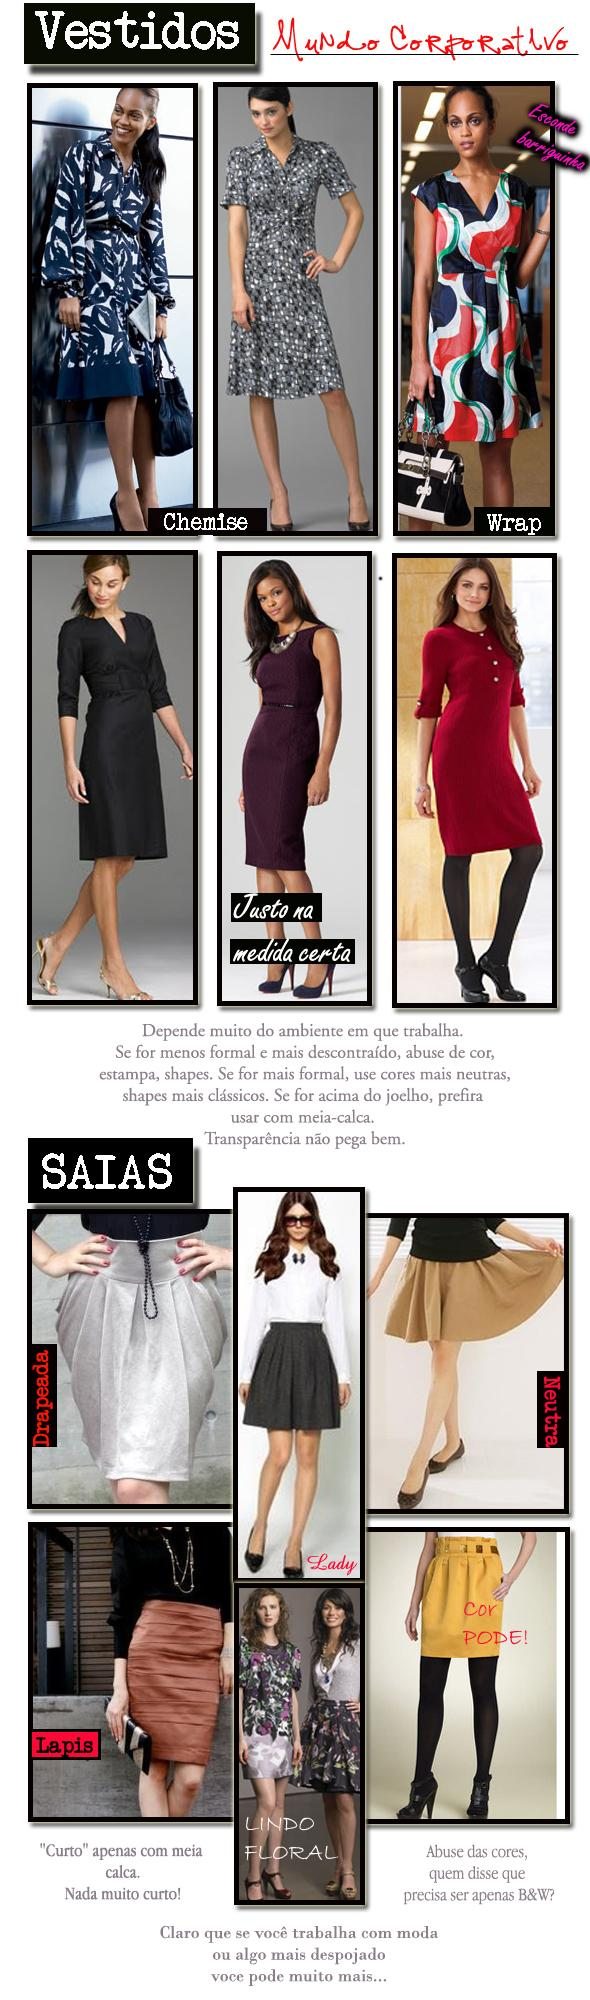 work clothes-saia e vestido glam4you